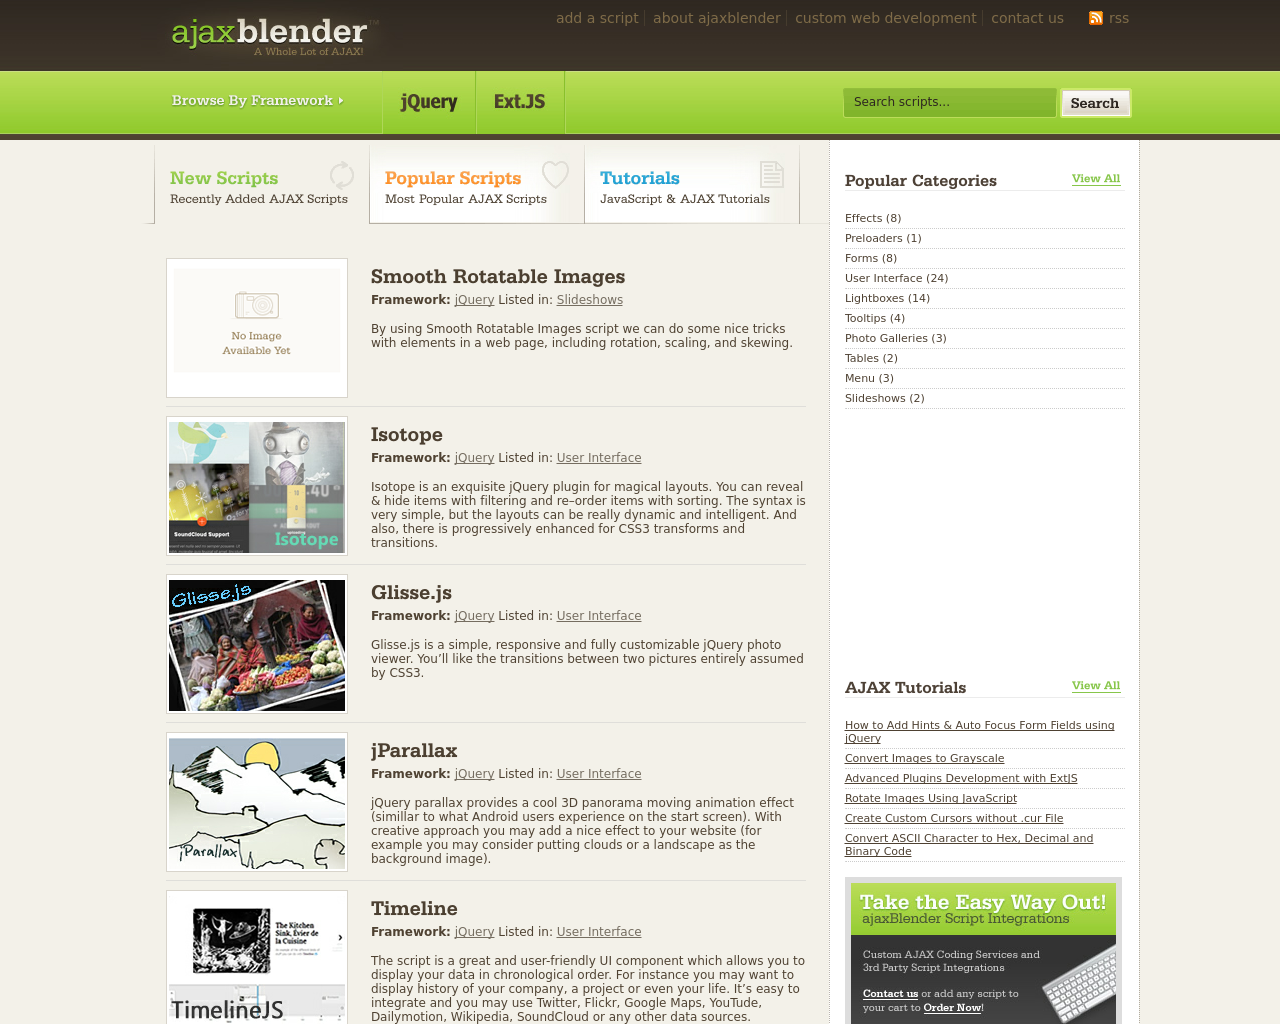 Ajaxblender-Advertising-Reviews-Pricing